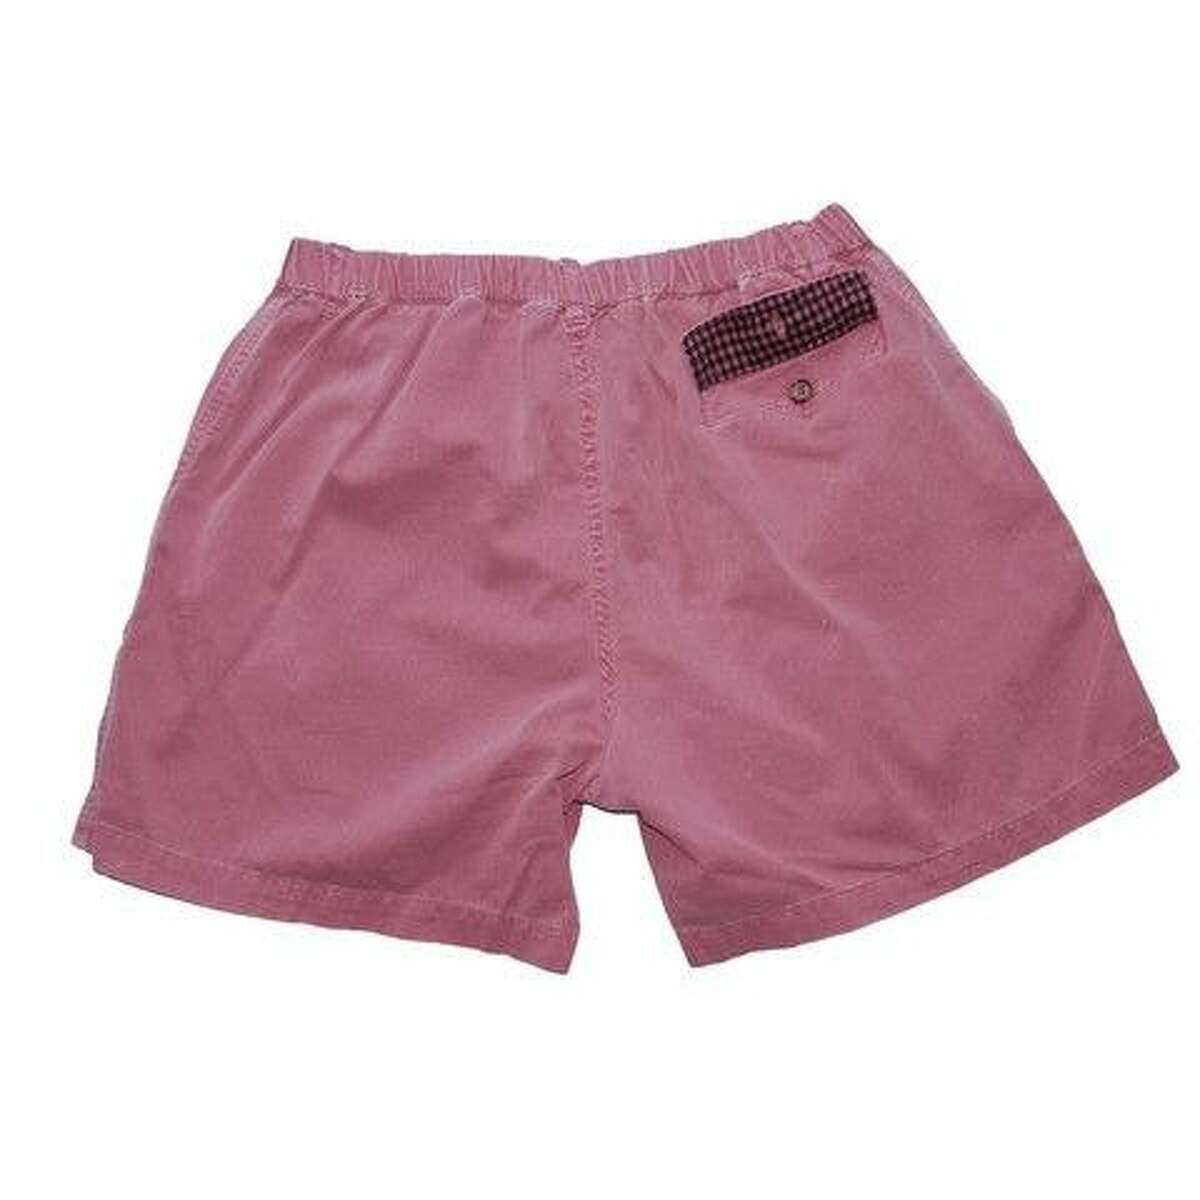 The Derby, $49.50. Chubbies, a Potrero Hill shorts company, has been making (and selling out of) its bro-tastic Americana short-shorts, with loyal fans nationally and abroad.